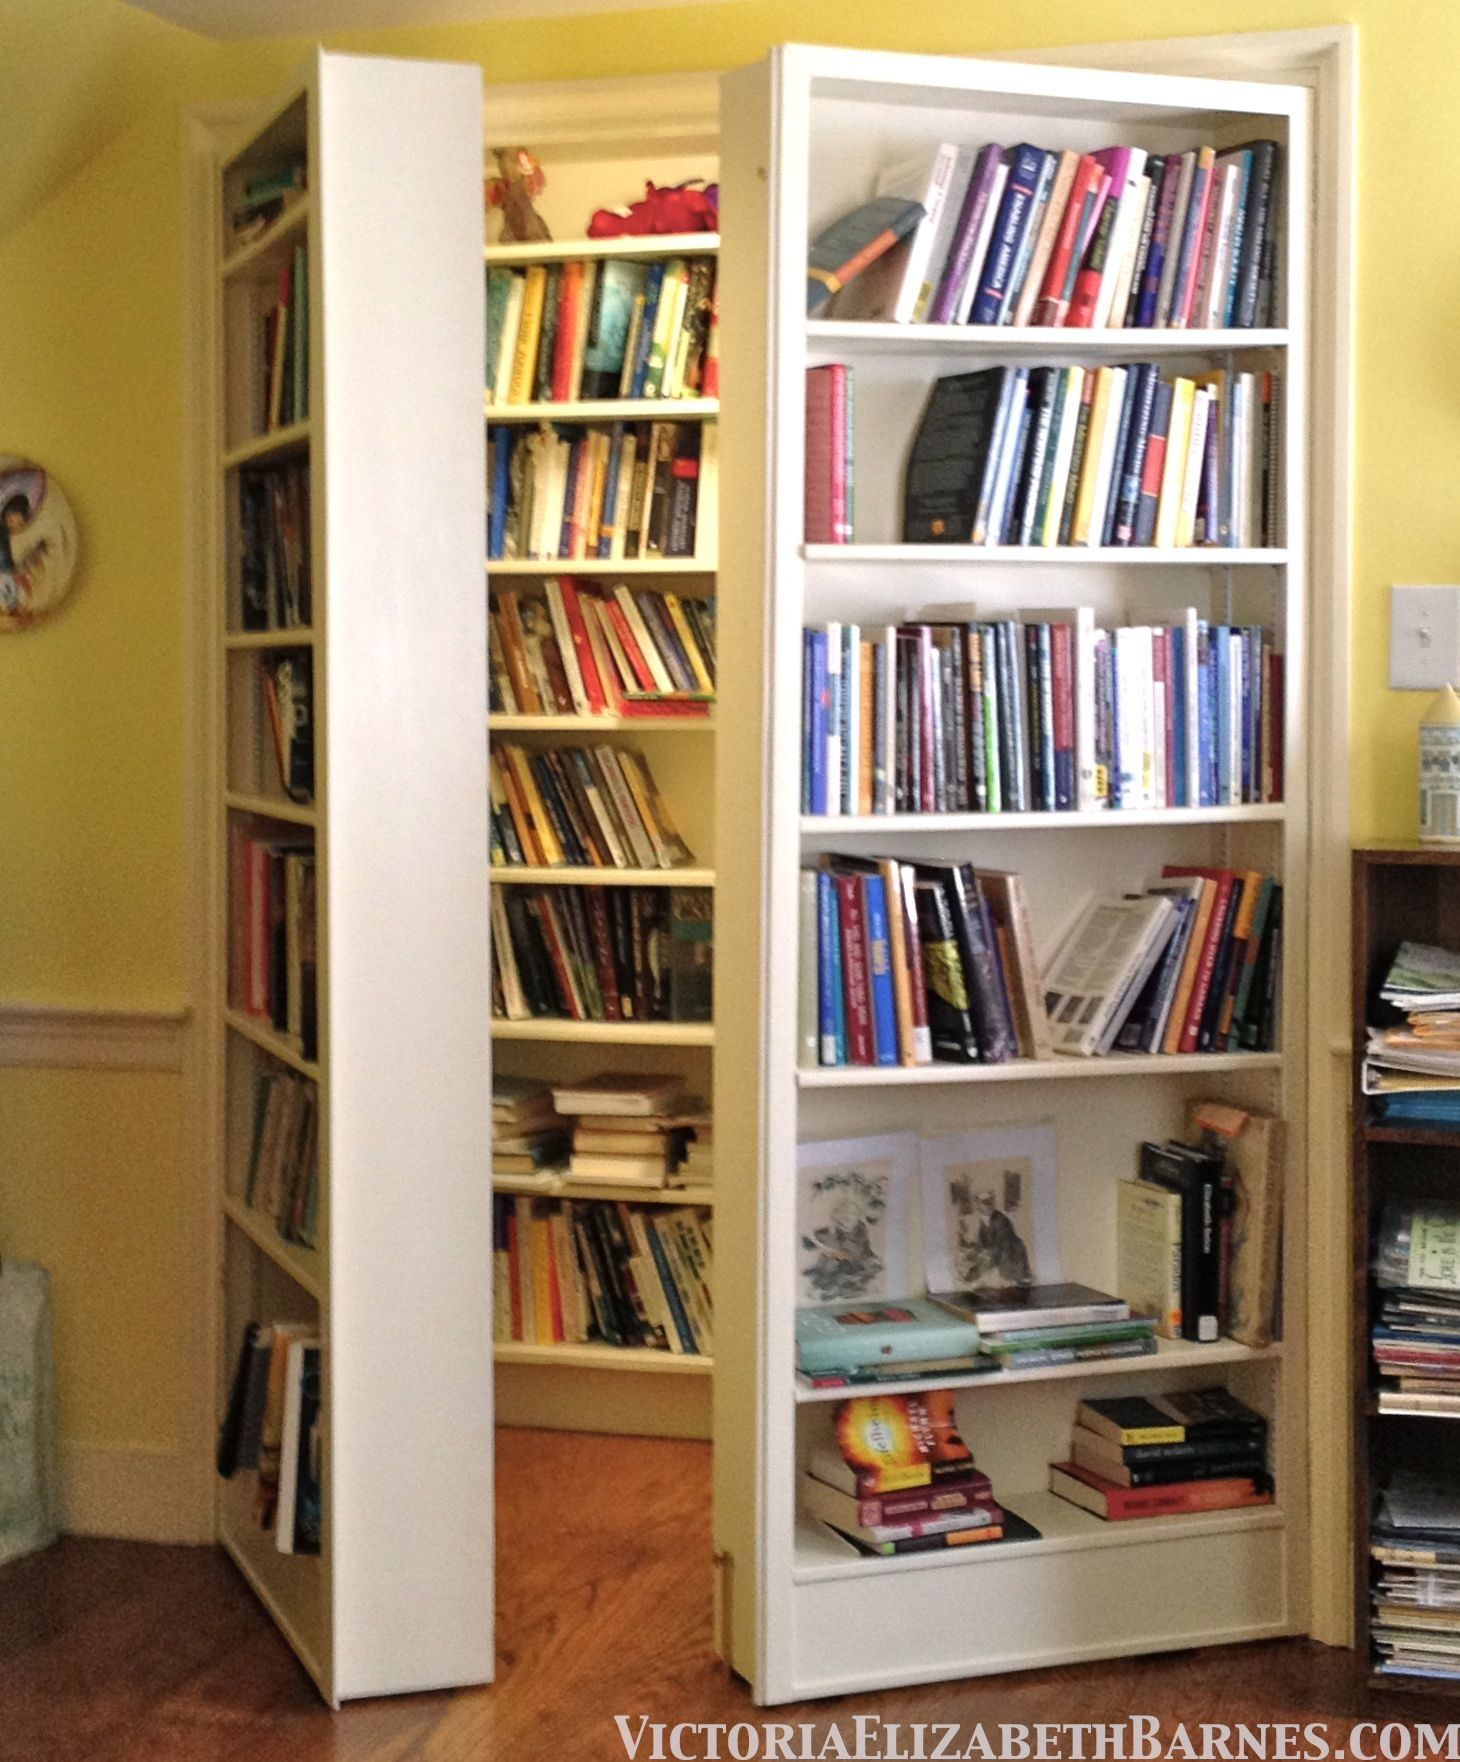 I Heard You Like Books So I Put A Bookcase Behind Some Bookcase Doors So  You Can Read While You Read